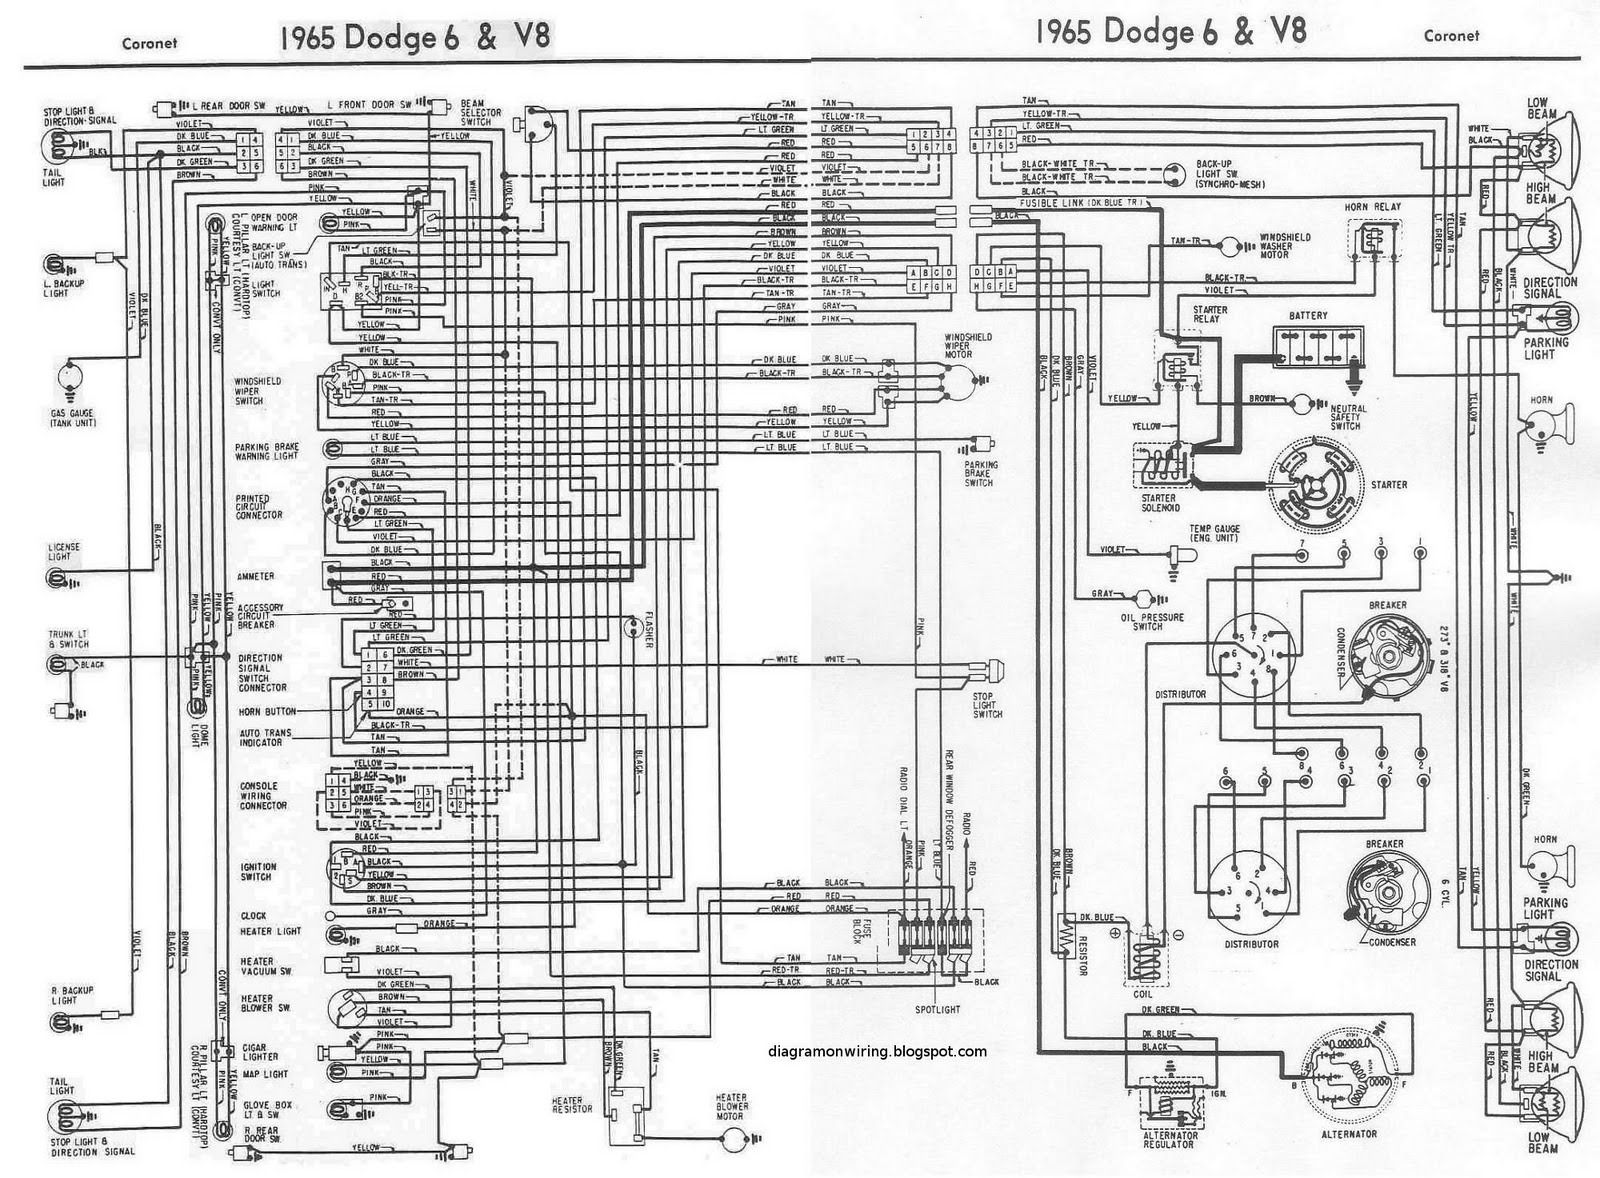 1969 lemans wiring diagram wiring diagram 1966 Corvair Wiring-Diagram 1969 dodge coronet wiring diagram wiring diagram data schemawiring diagram on 1969 coronet data wiring diagram